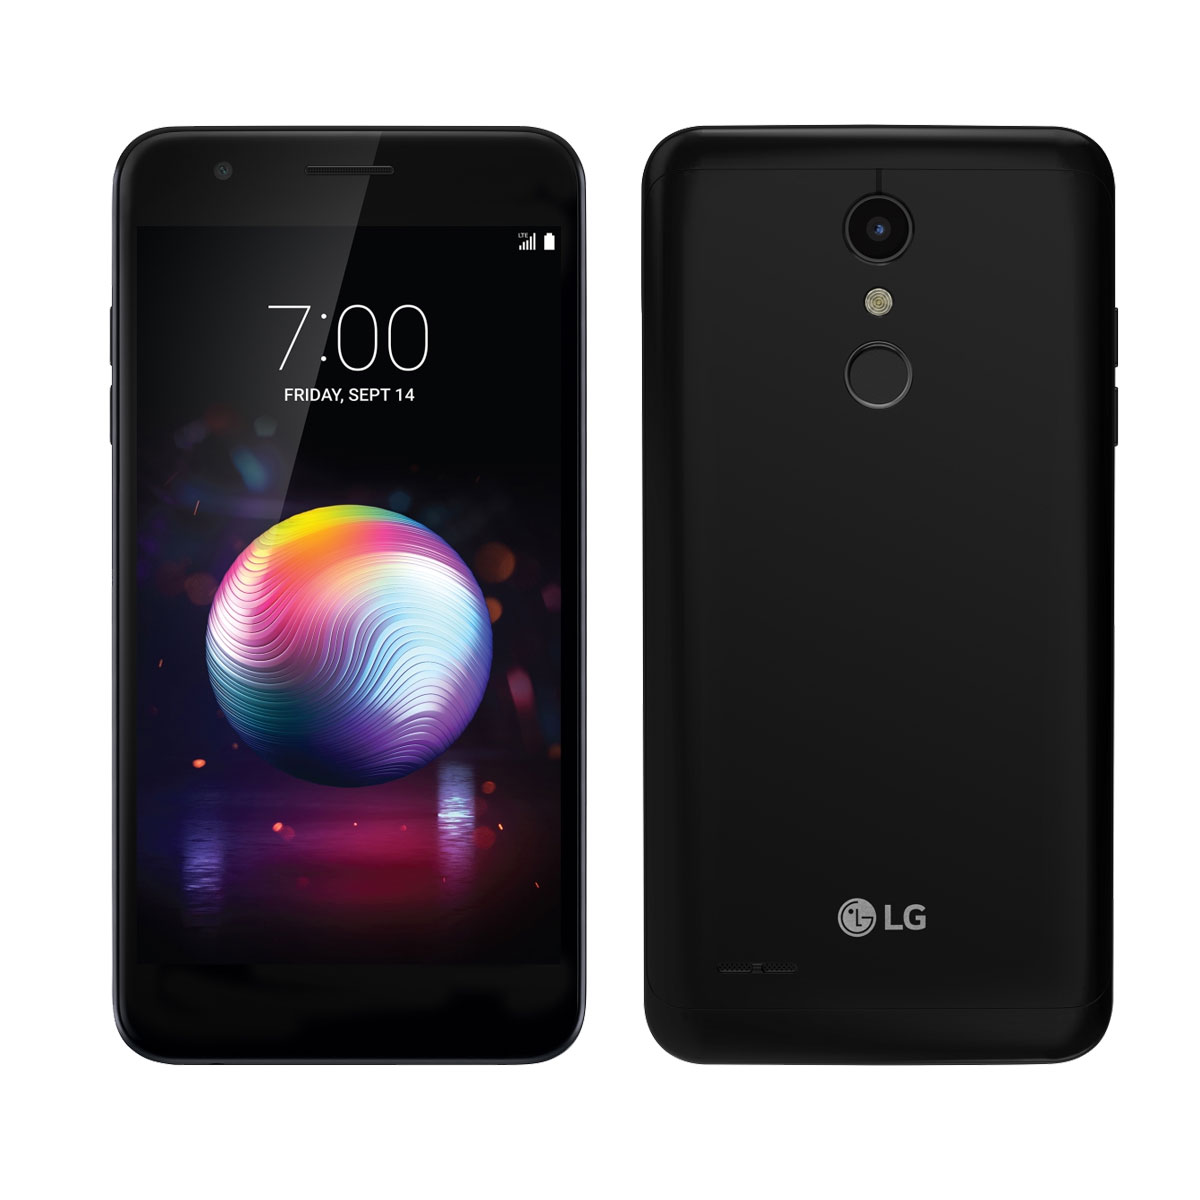 Details about LG K30 X410PM Sprint (GSM Unlocked) Black 5 3